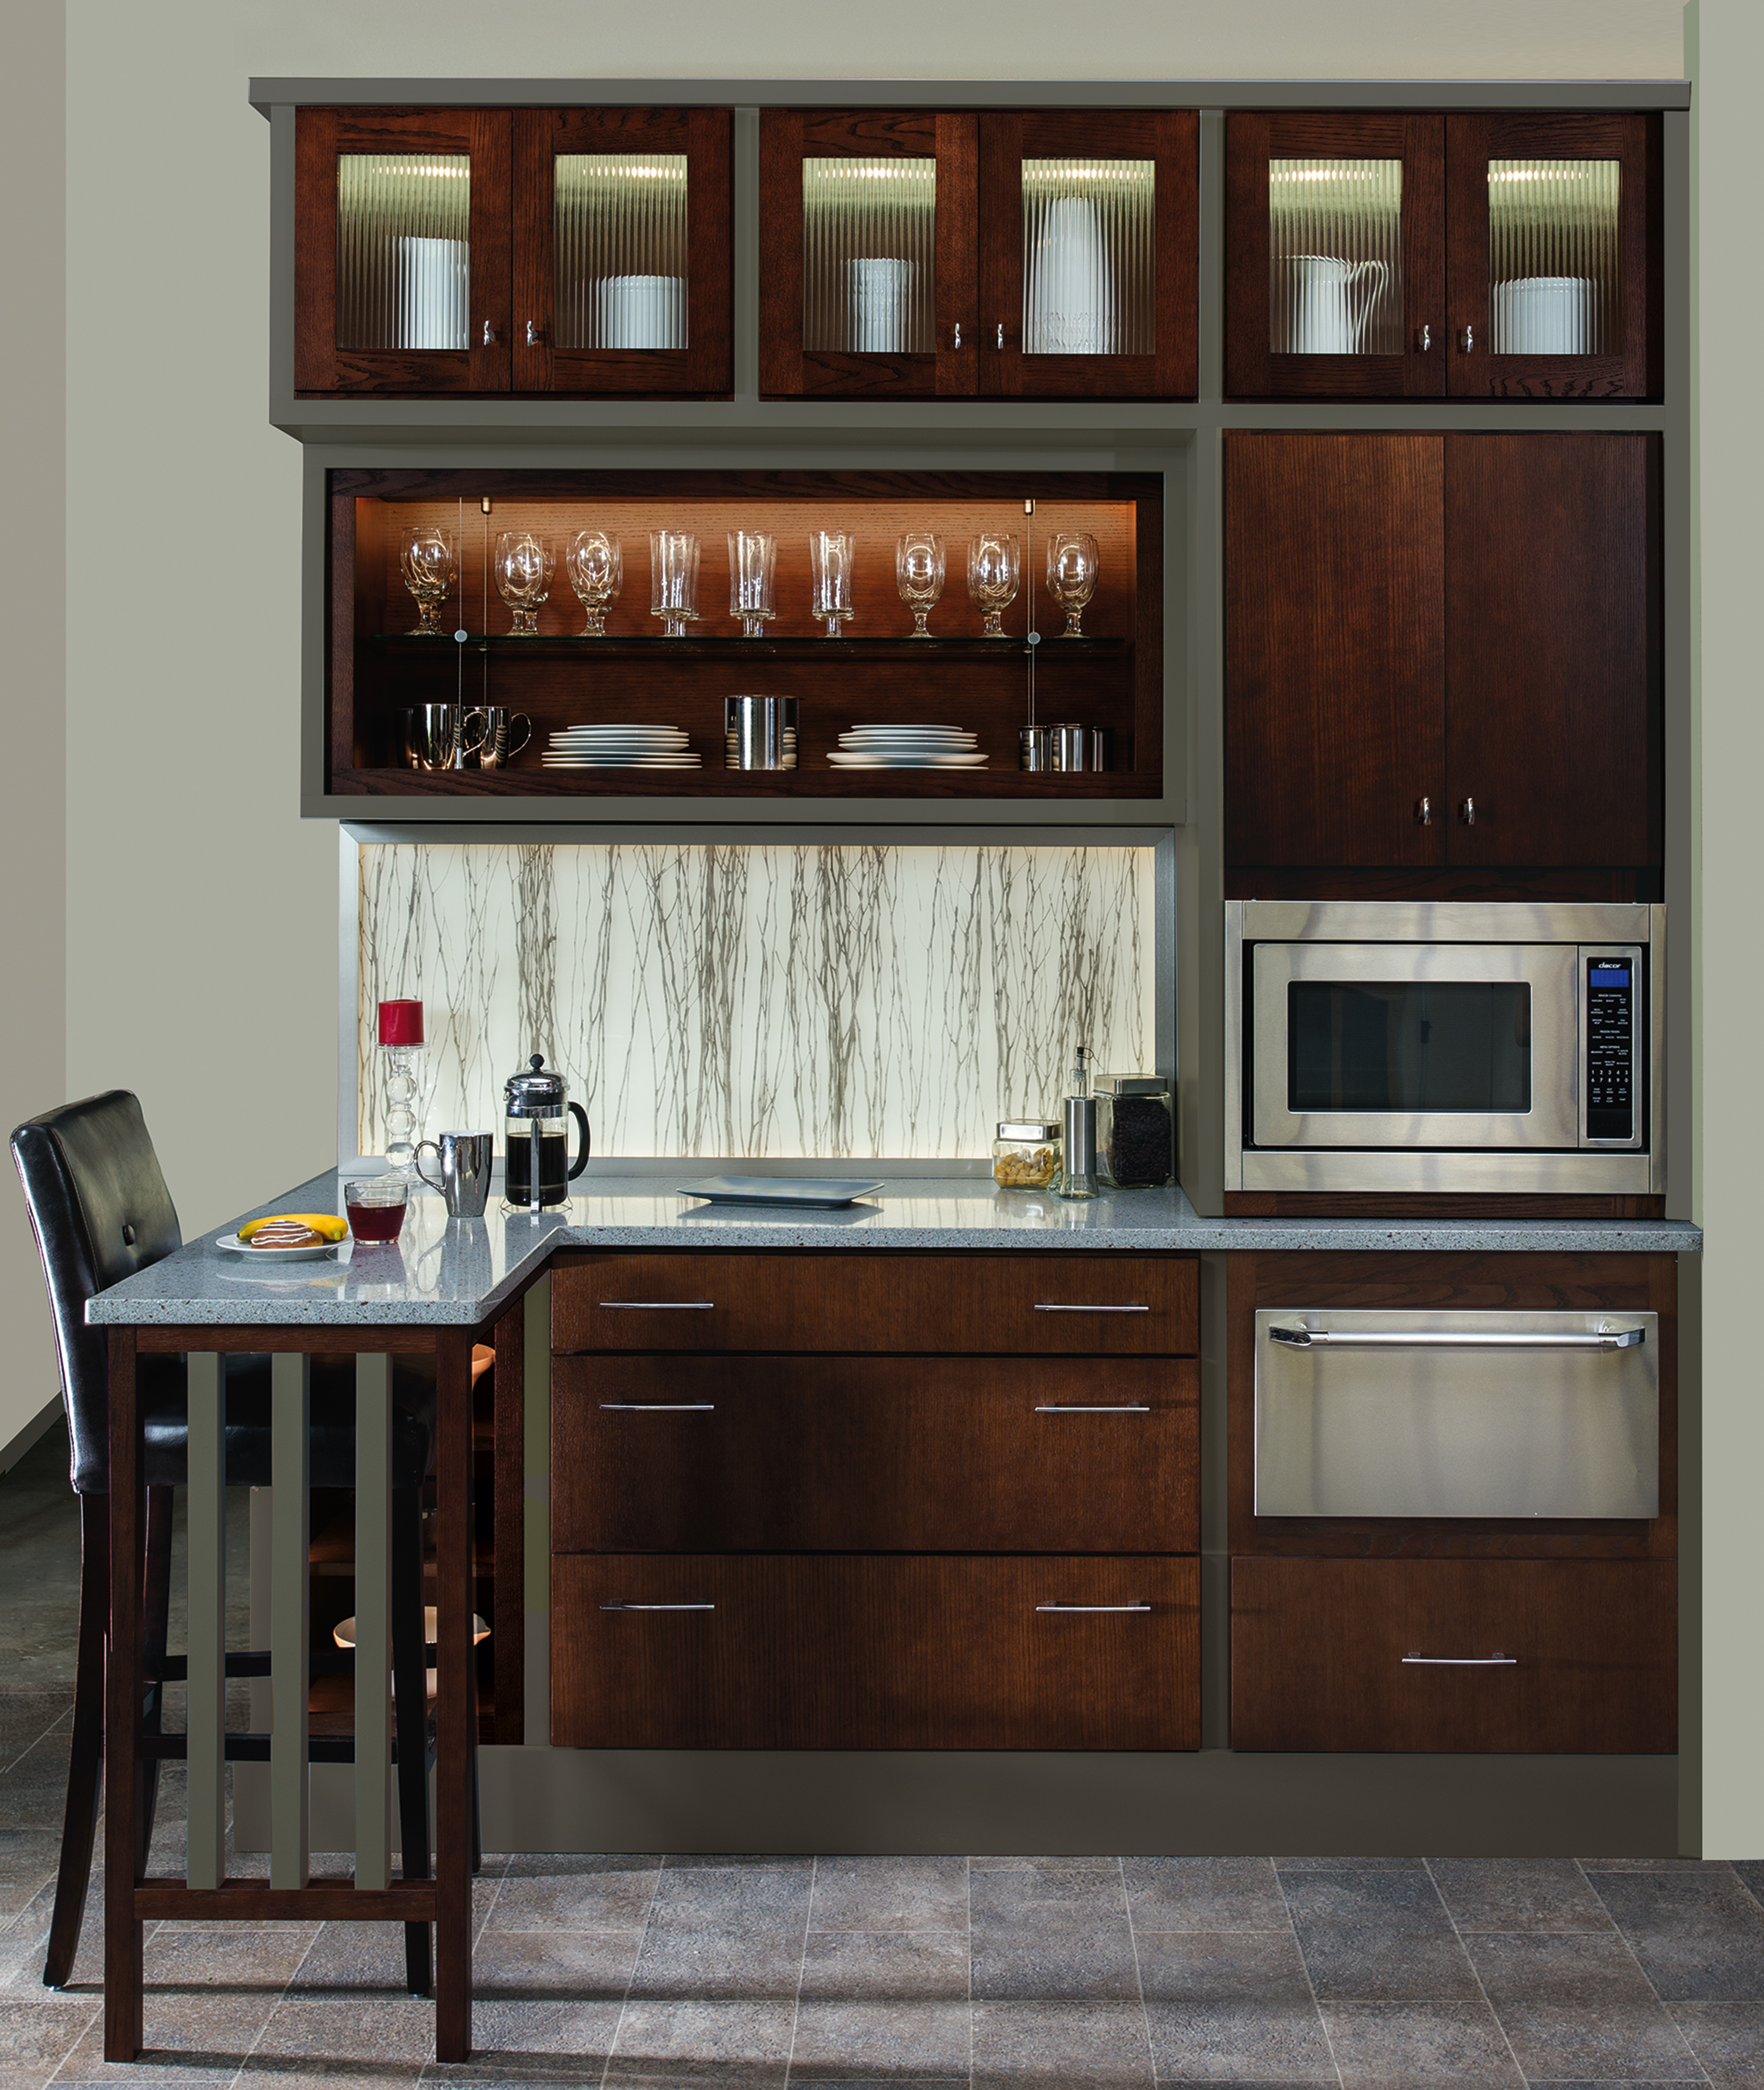 Knock Down Kitchen Cabinets Wellborn Cabinet Blog Wellborn Cabinet Inc